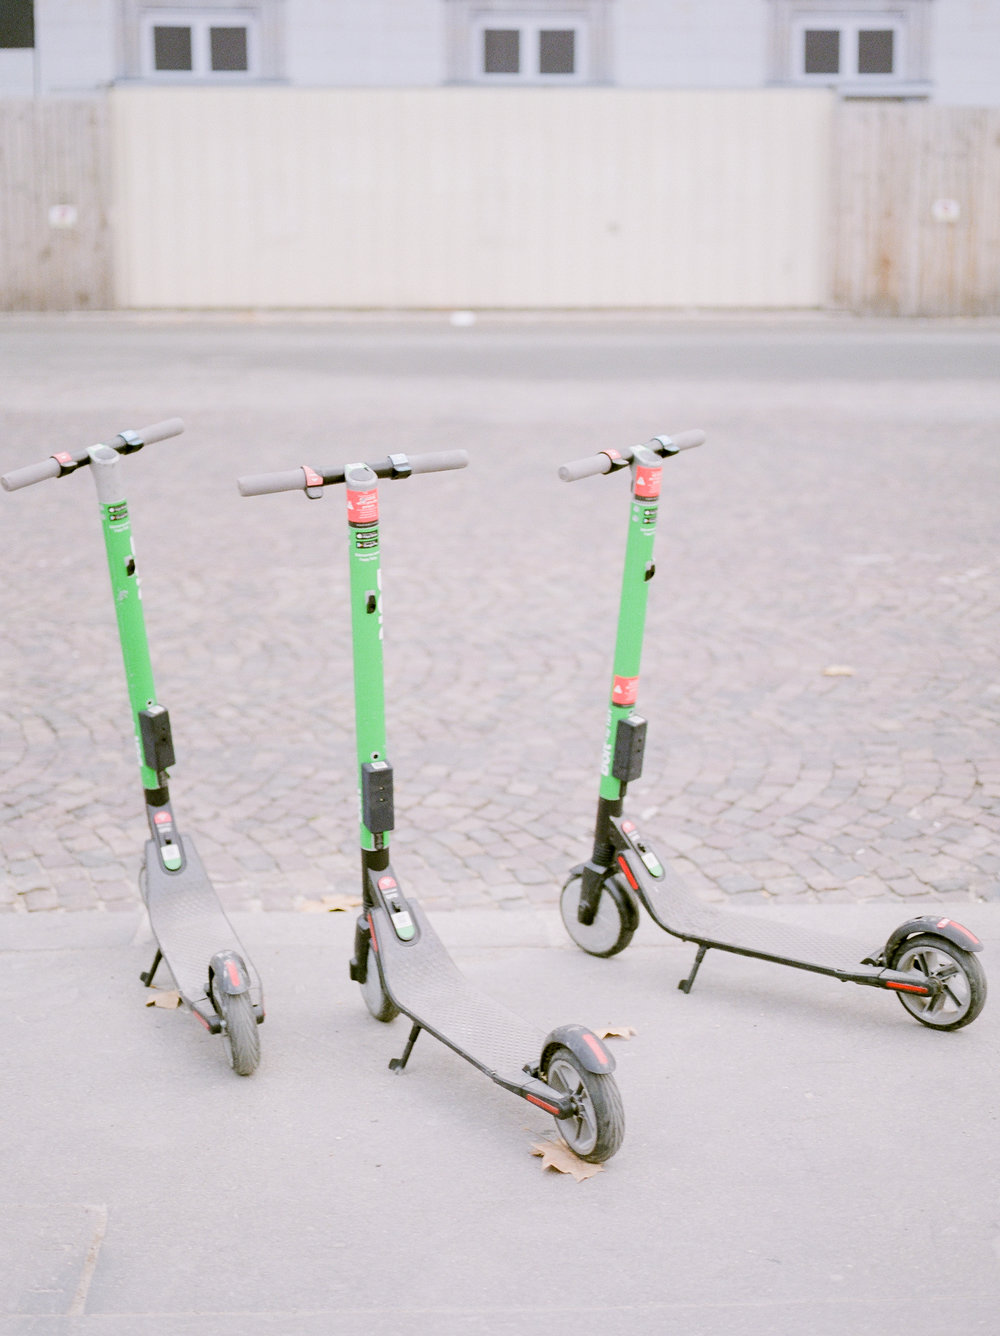 bird-scooters-paris-france.jpg